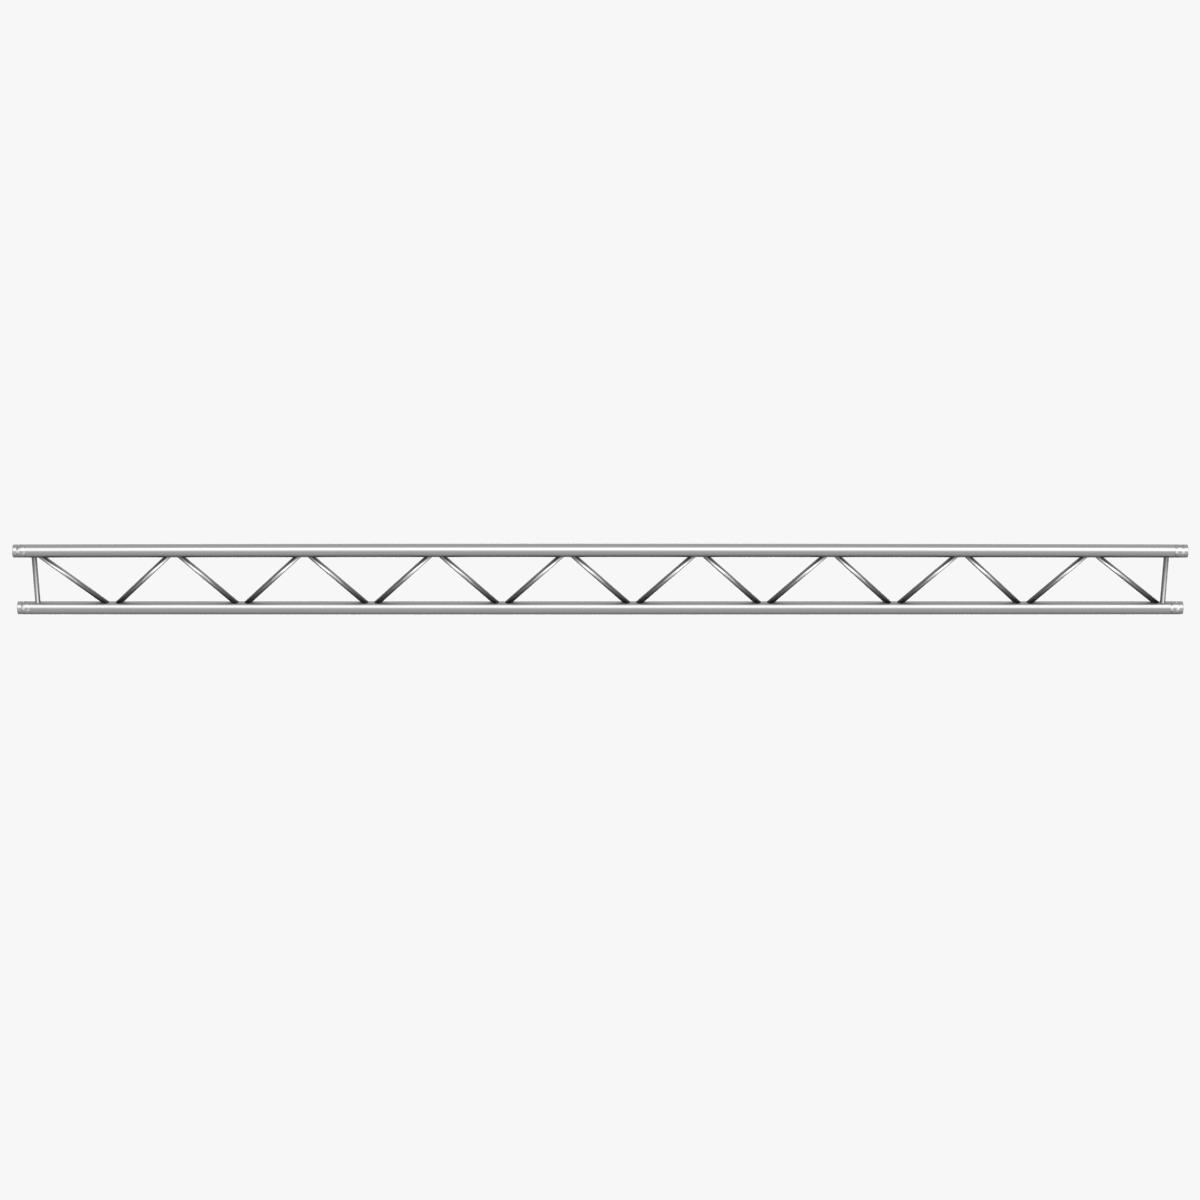 beam trusses (collection 24 modular pieces) 3d model 3ds max dxf fbx bmp blend c4d dae other obj 268736